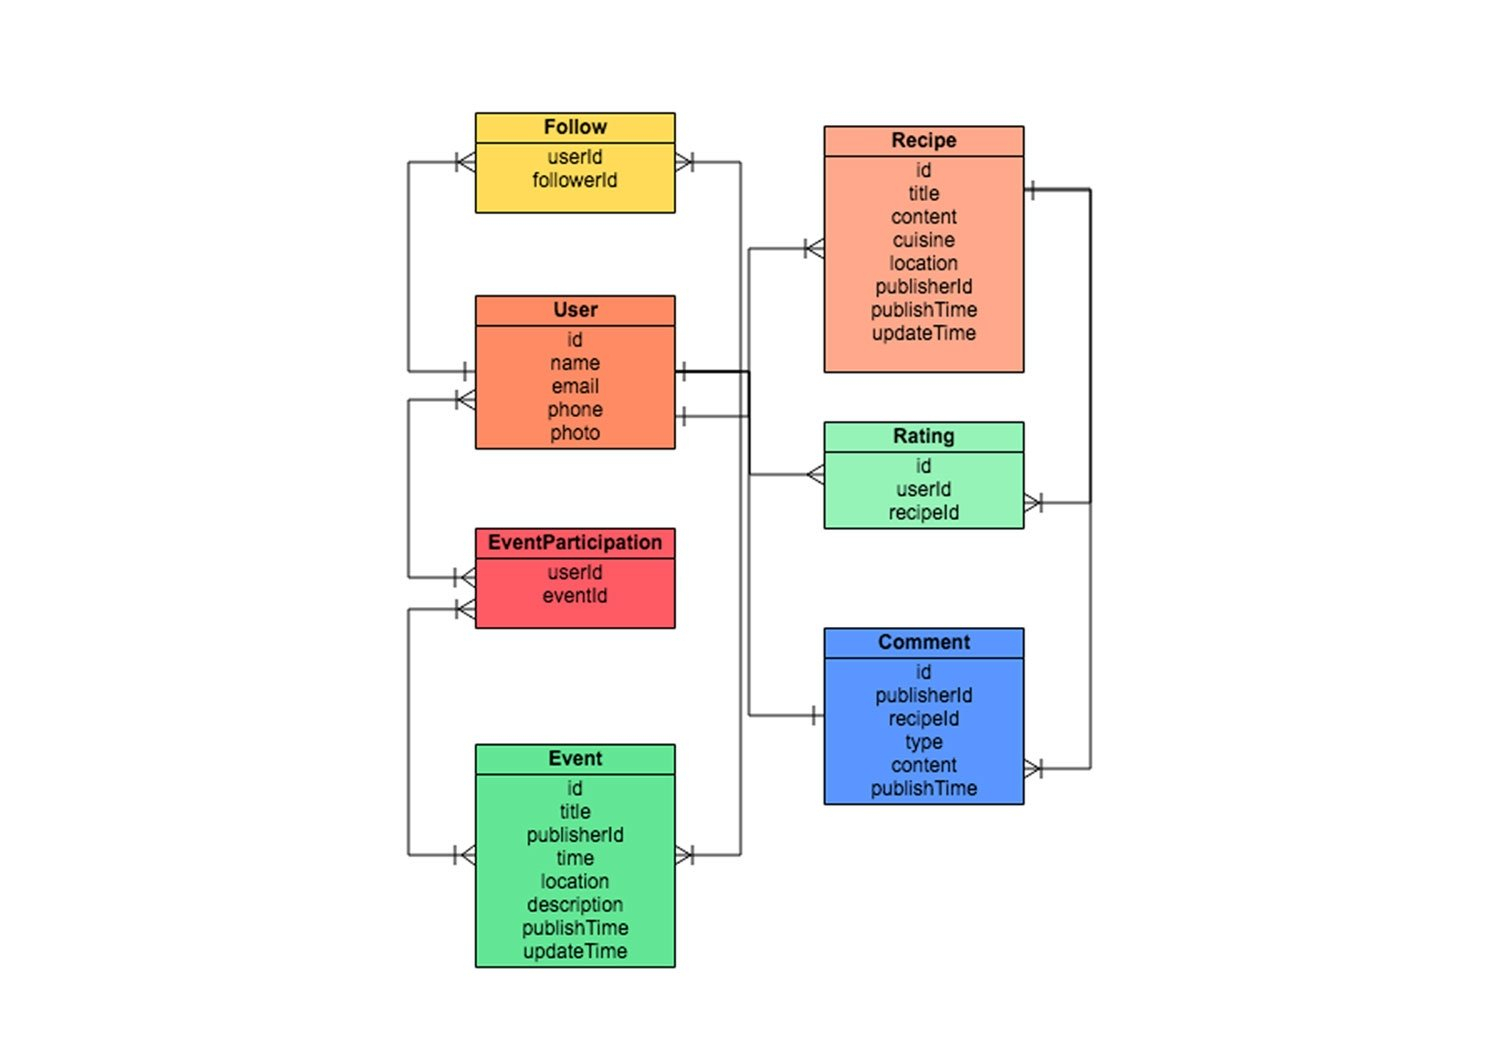 Er Diagram Tool | Draw Er Diagrams Online | Gliffy with regard to Entity Relationship Diagram Example